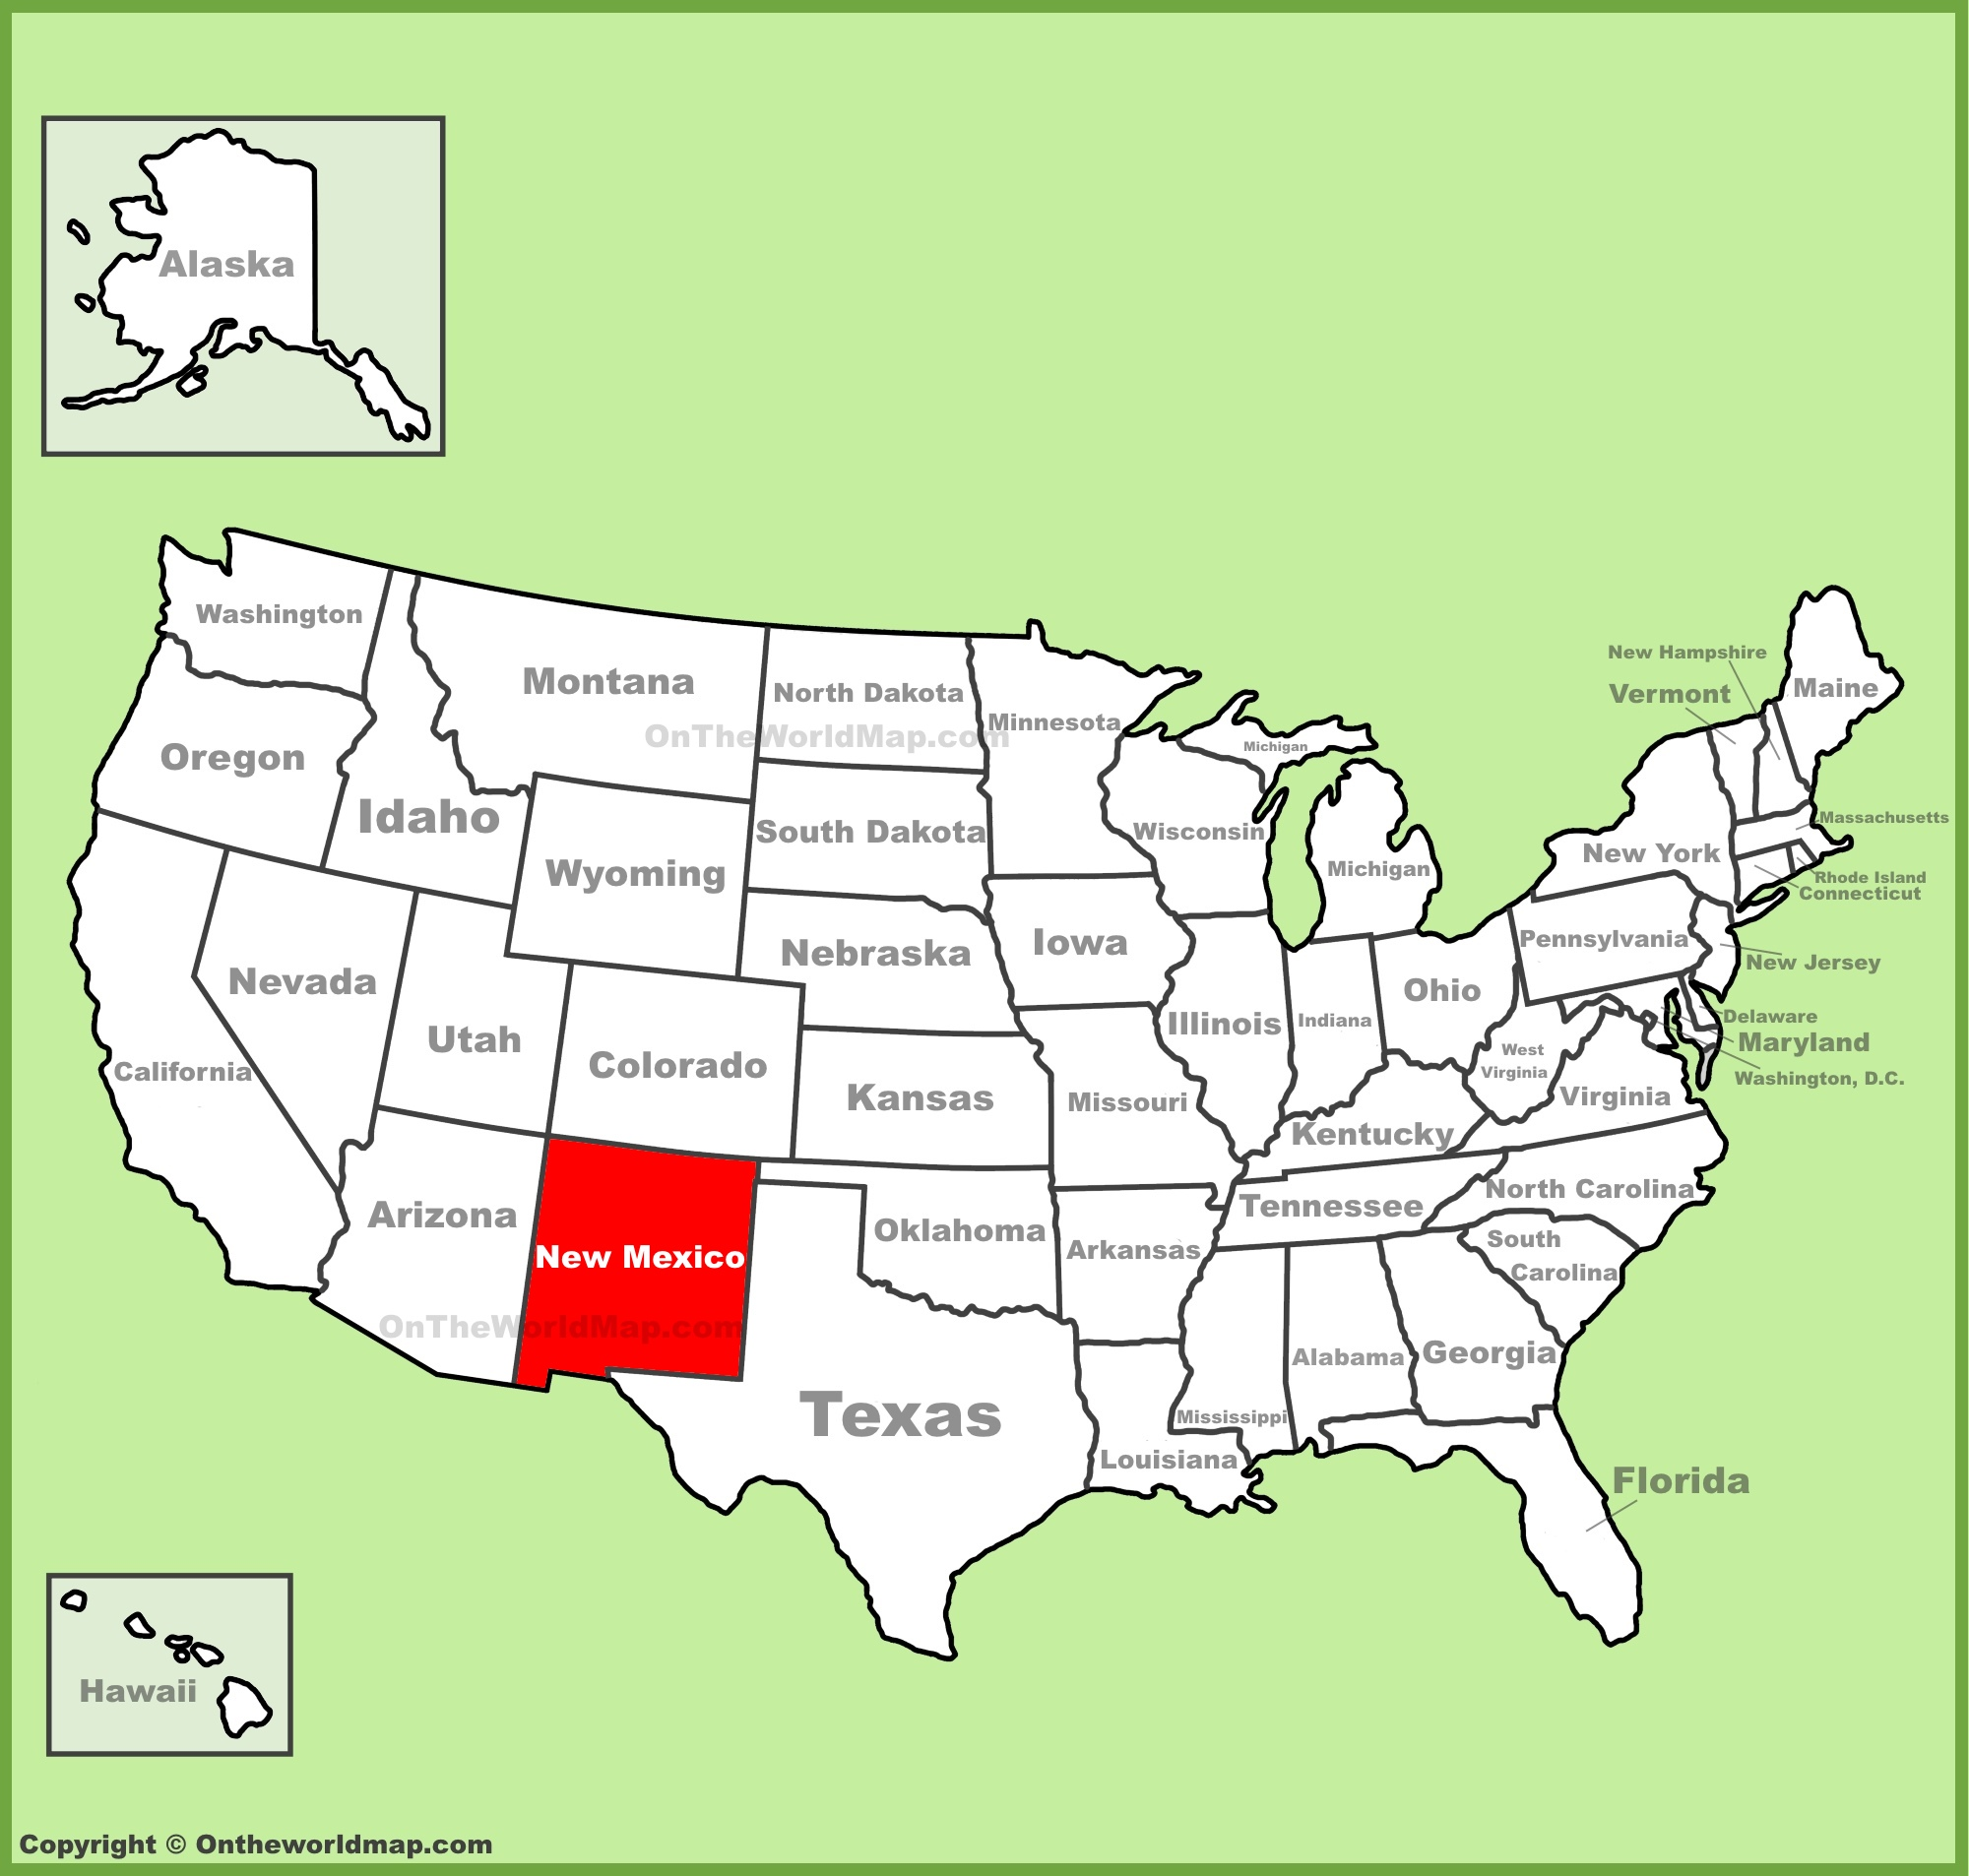 New Mexico On Map New Mexico location on the U.S. Map